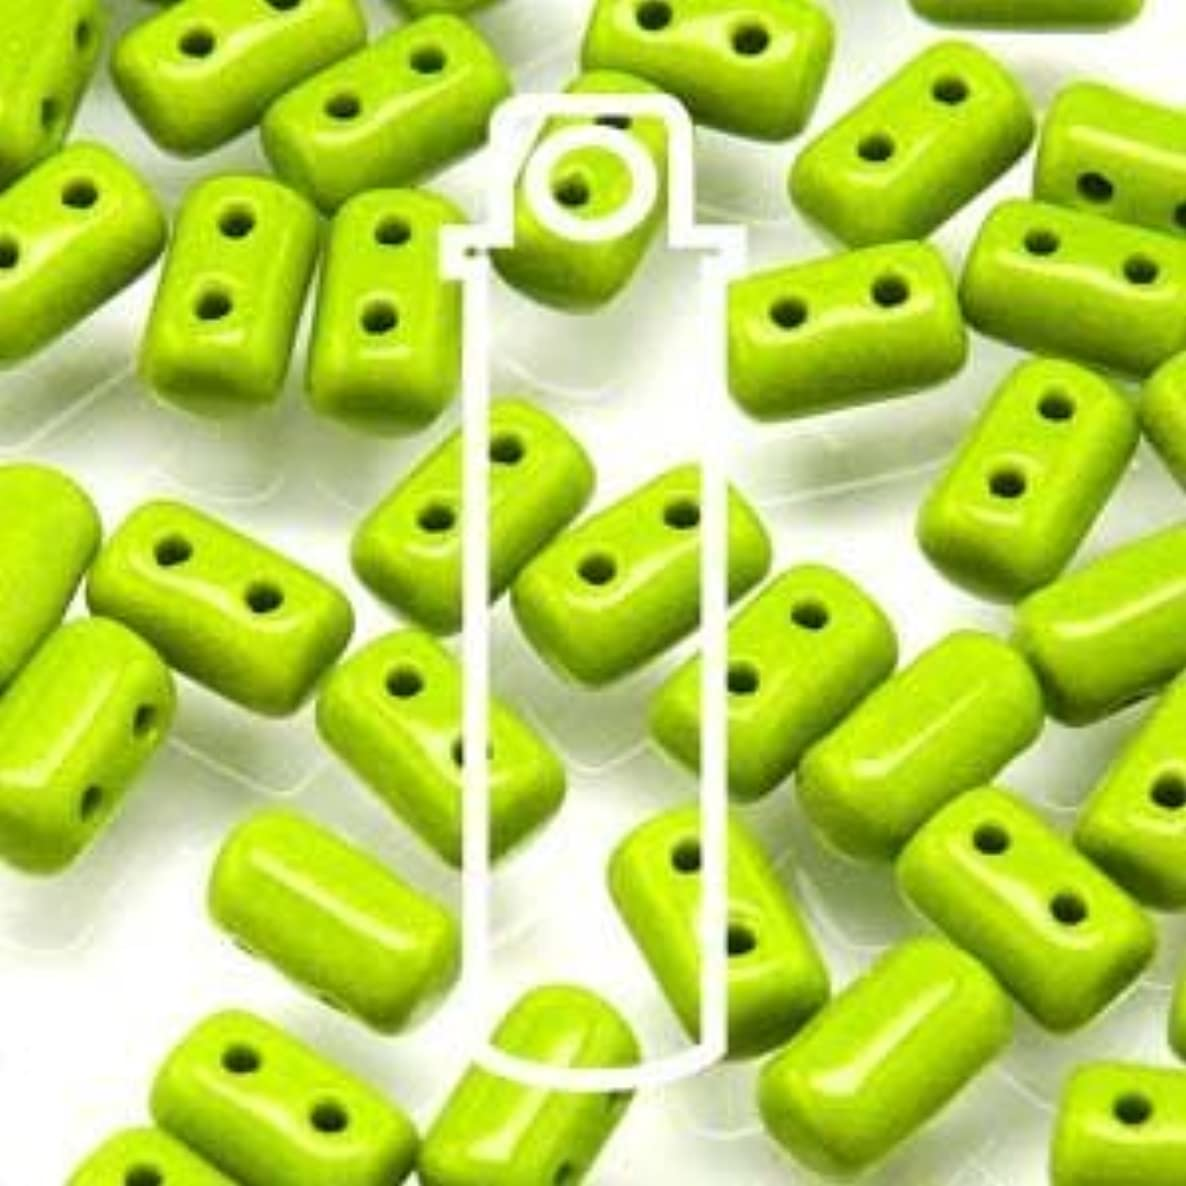 Opaque Green 3x5mm Rulla Glass Beads (2 Hole)